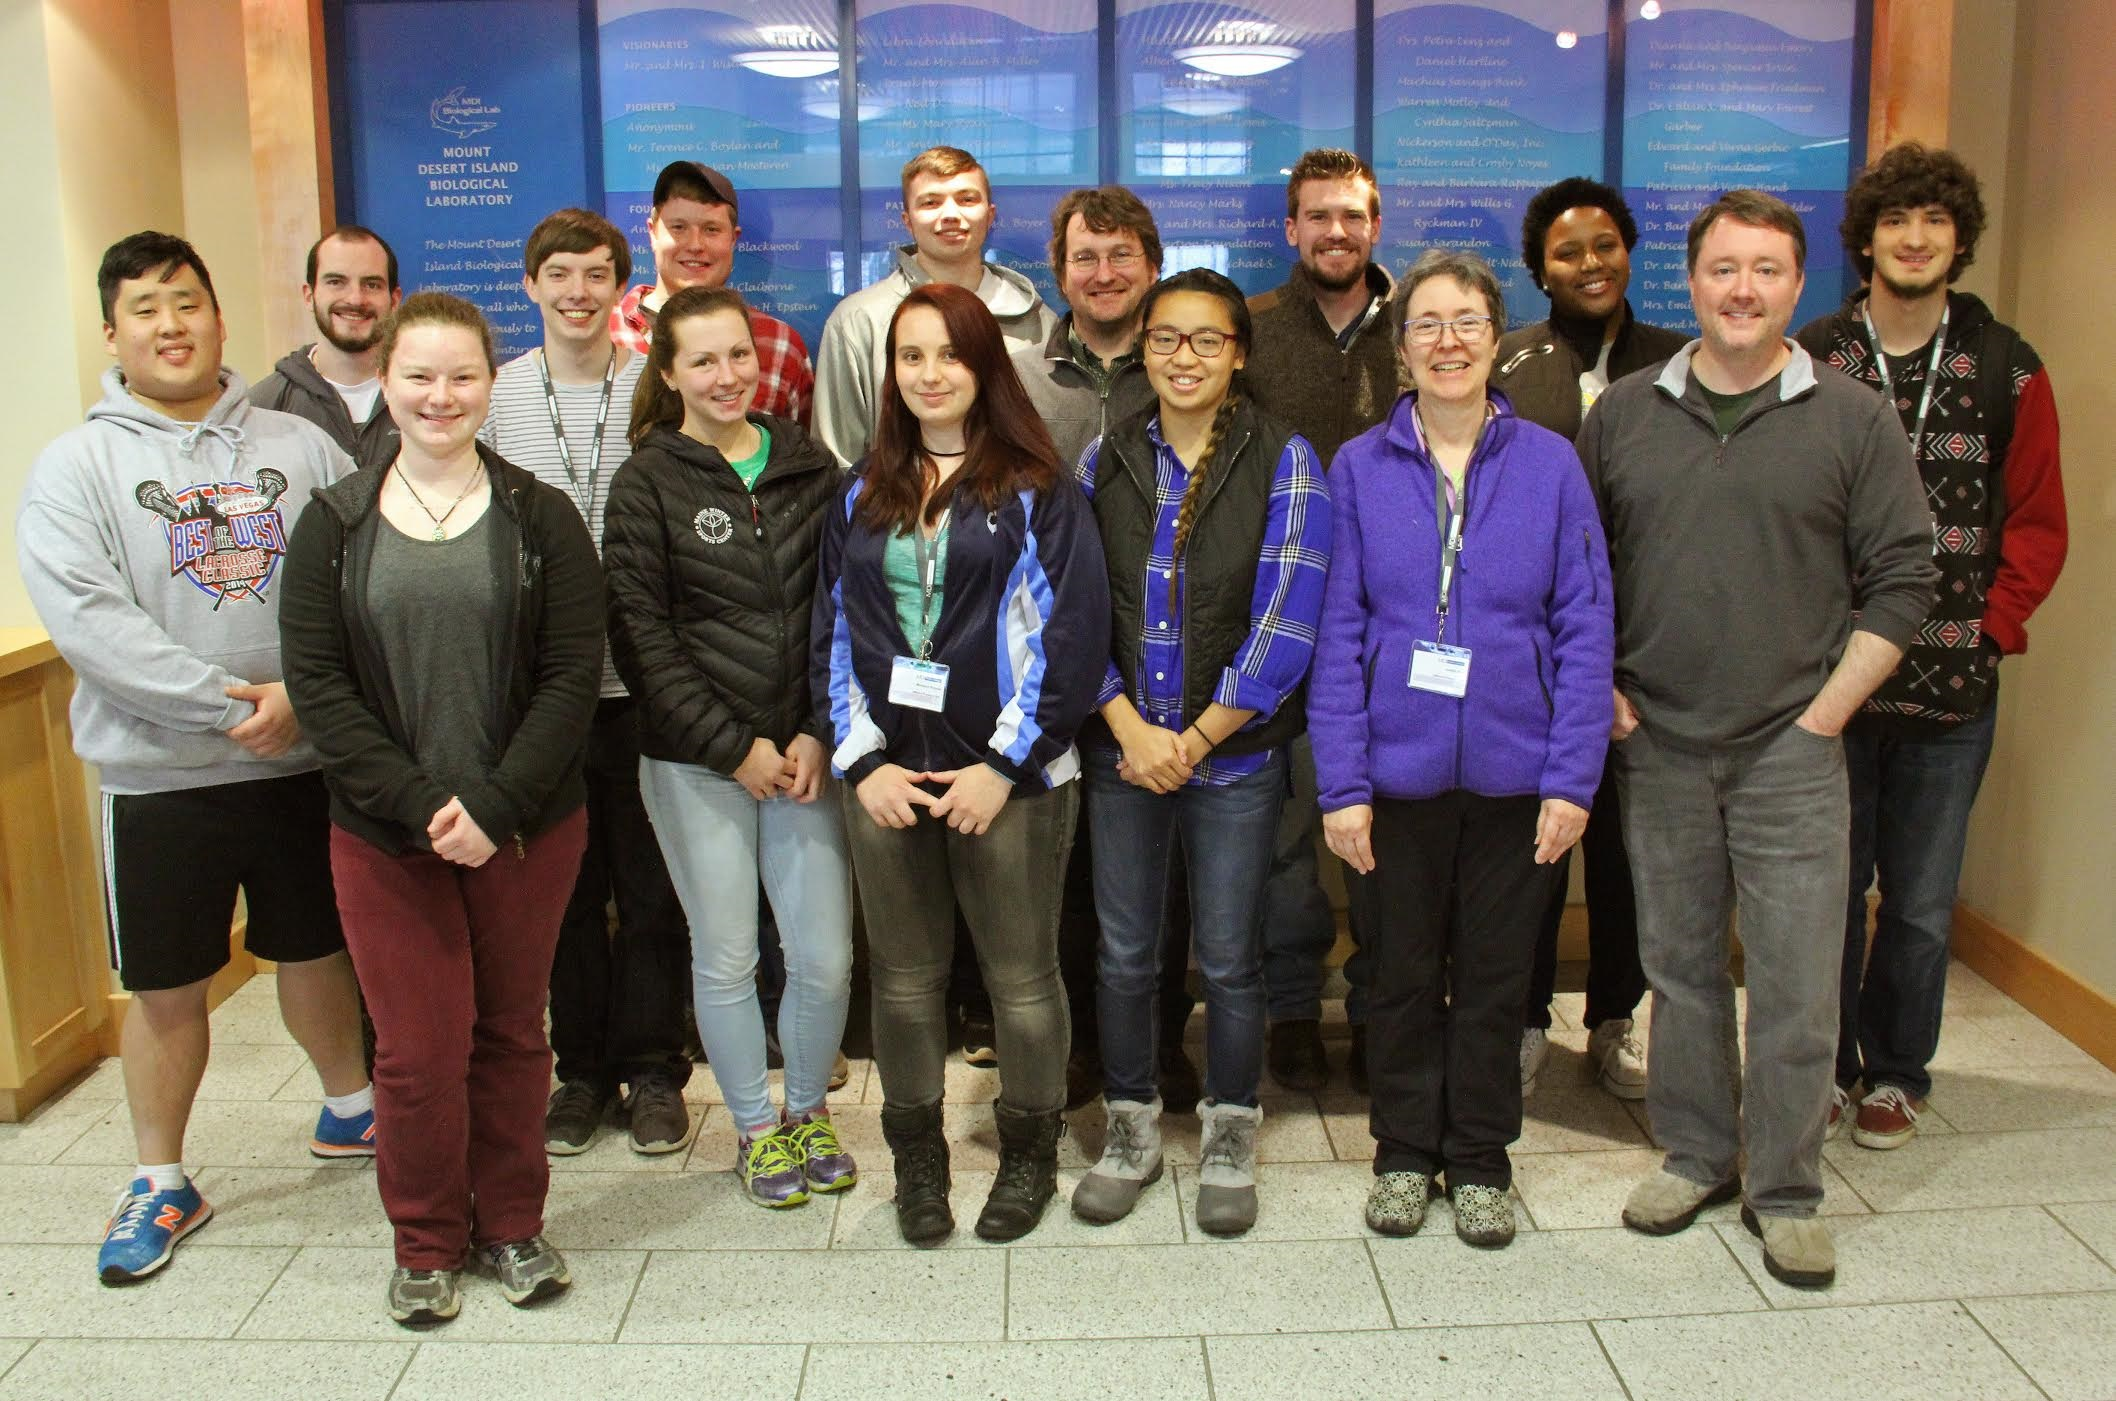 Biology students attend Biomedical short course at MDIBL